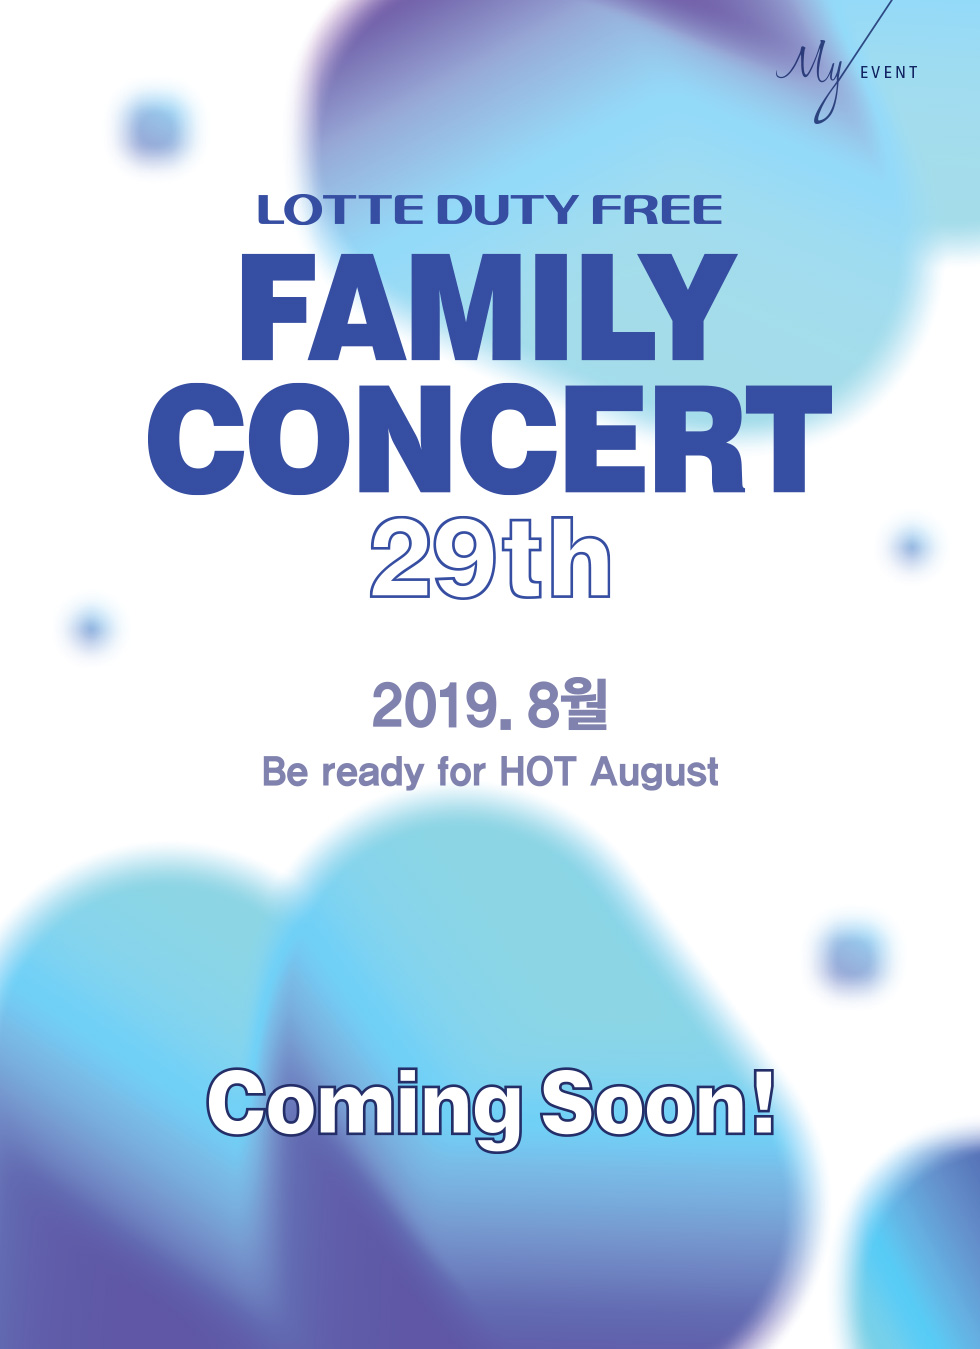 LOTTE DUTY FREE FAMILY CONCERT 29th 2019.8월 Be ready for HOT August Coming Soon!